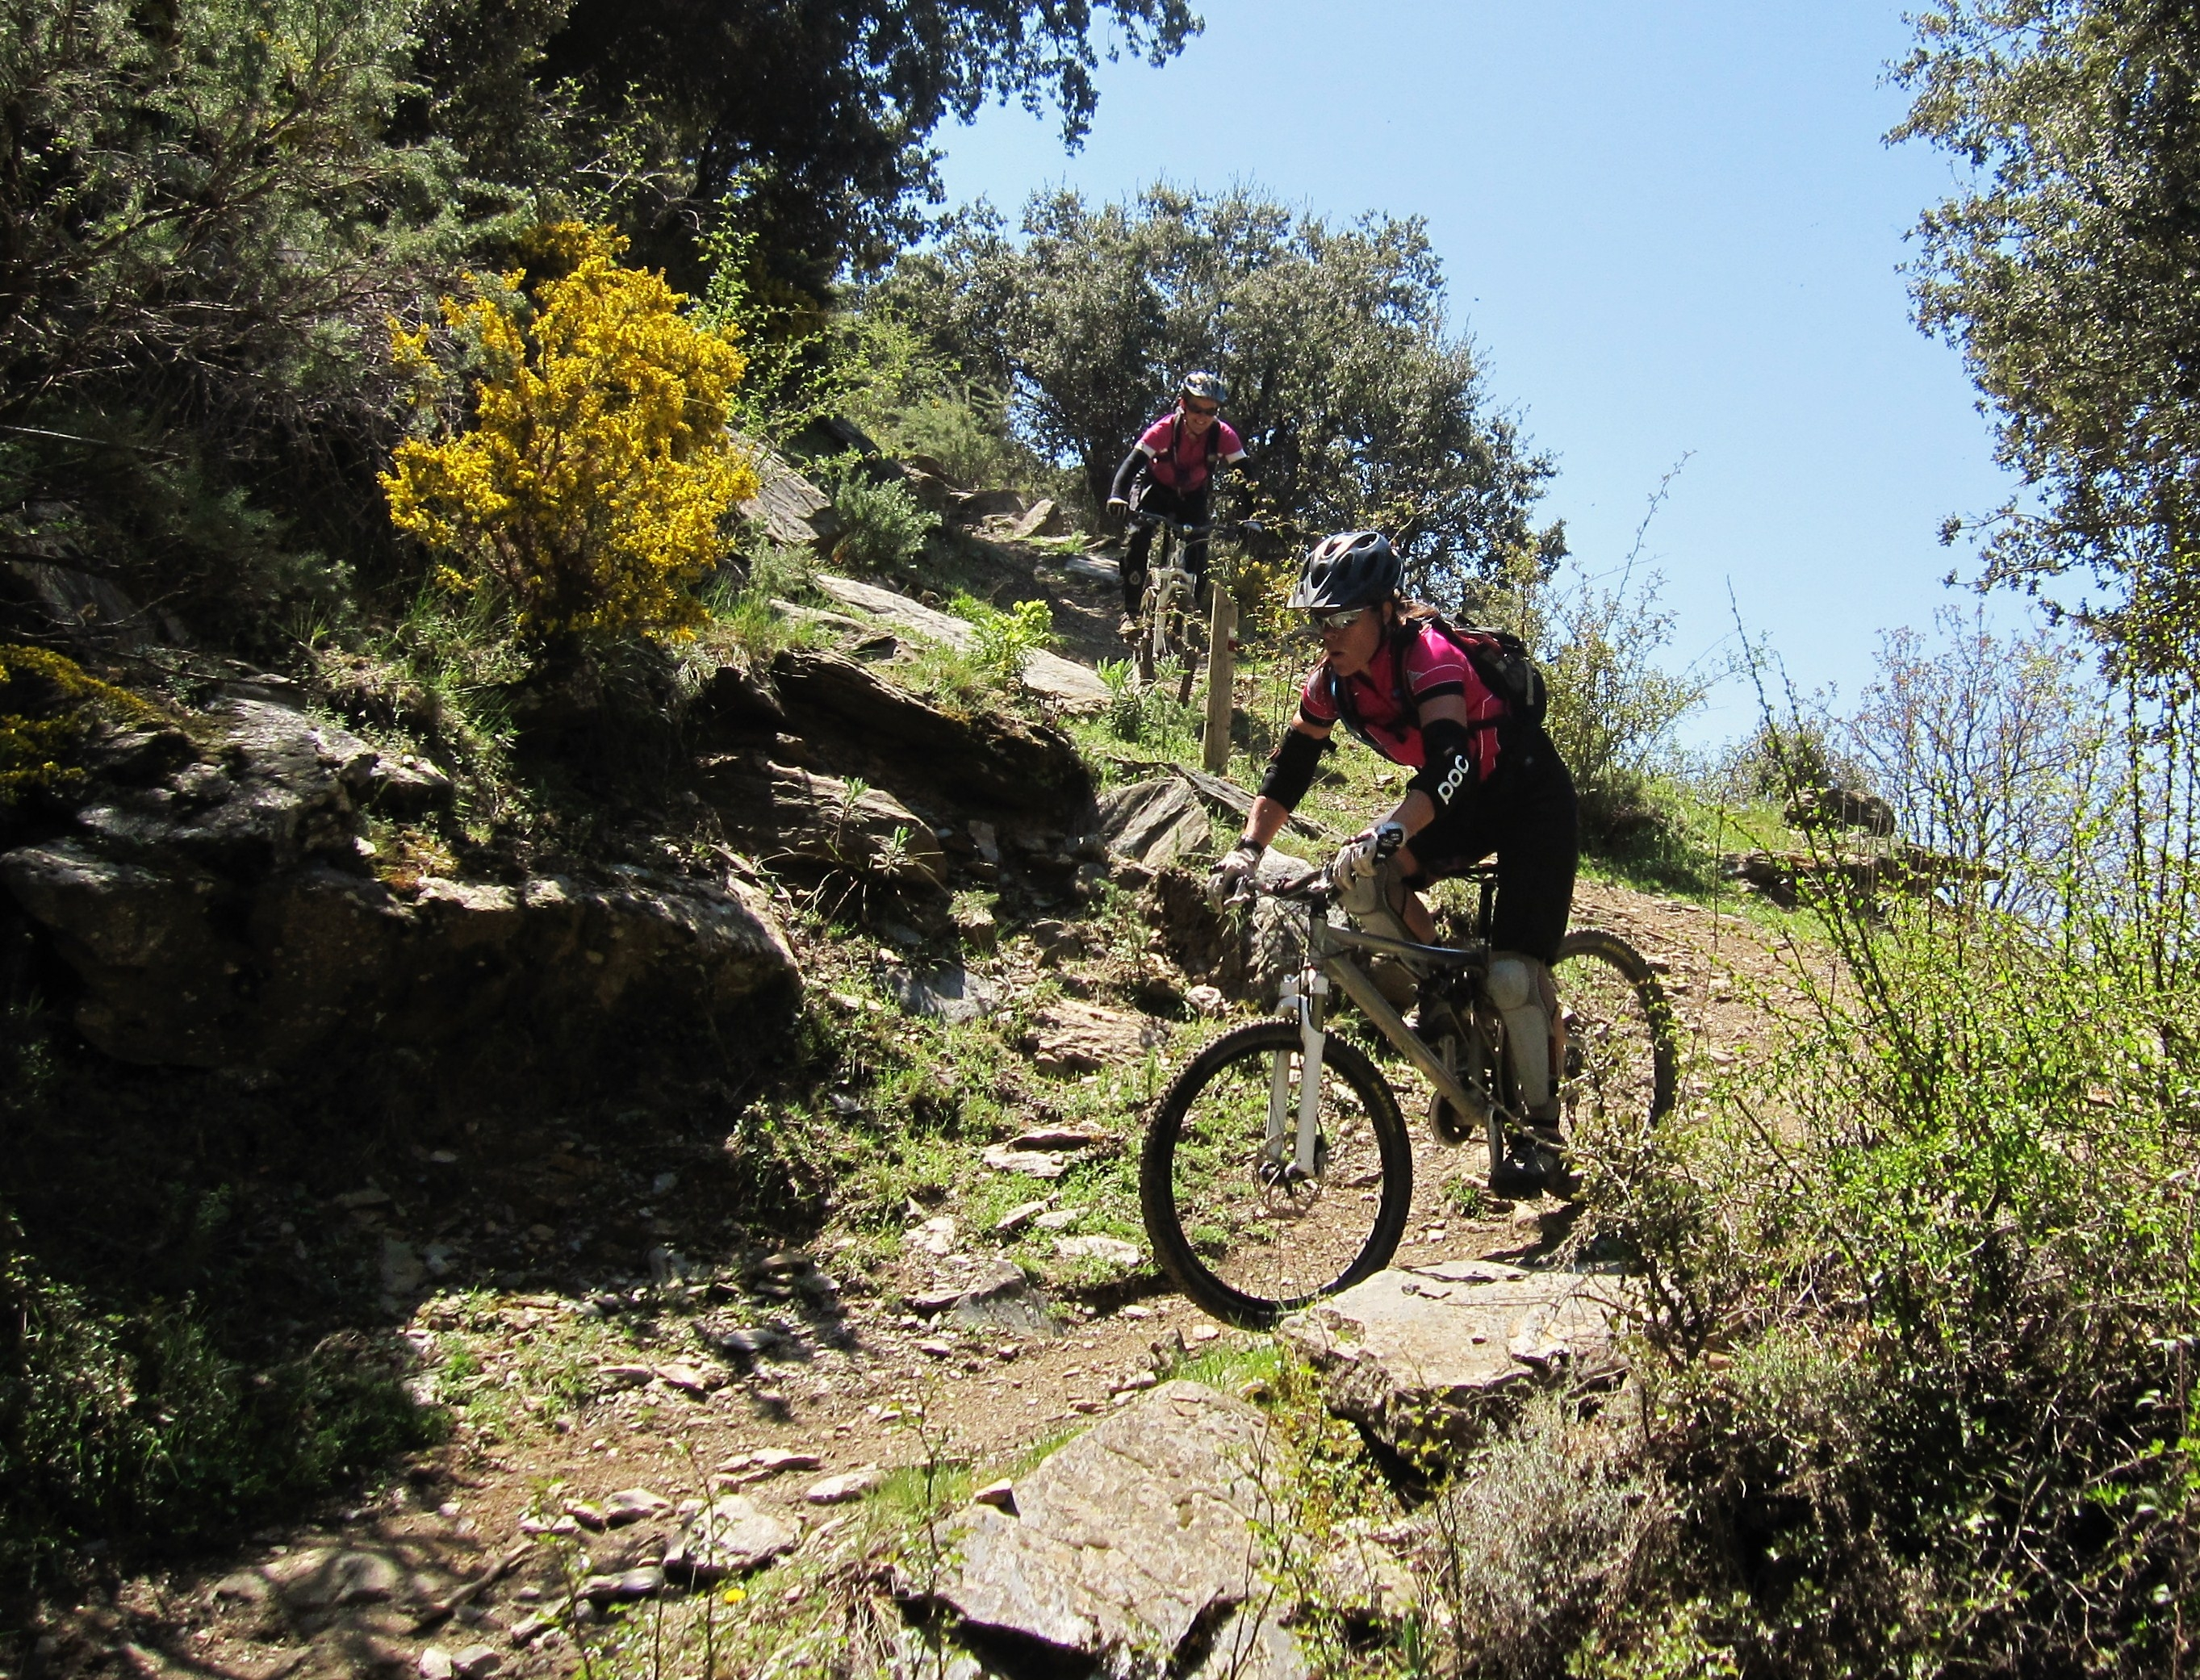 Sunny trails at Pure Mountains